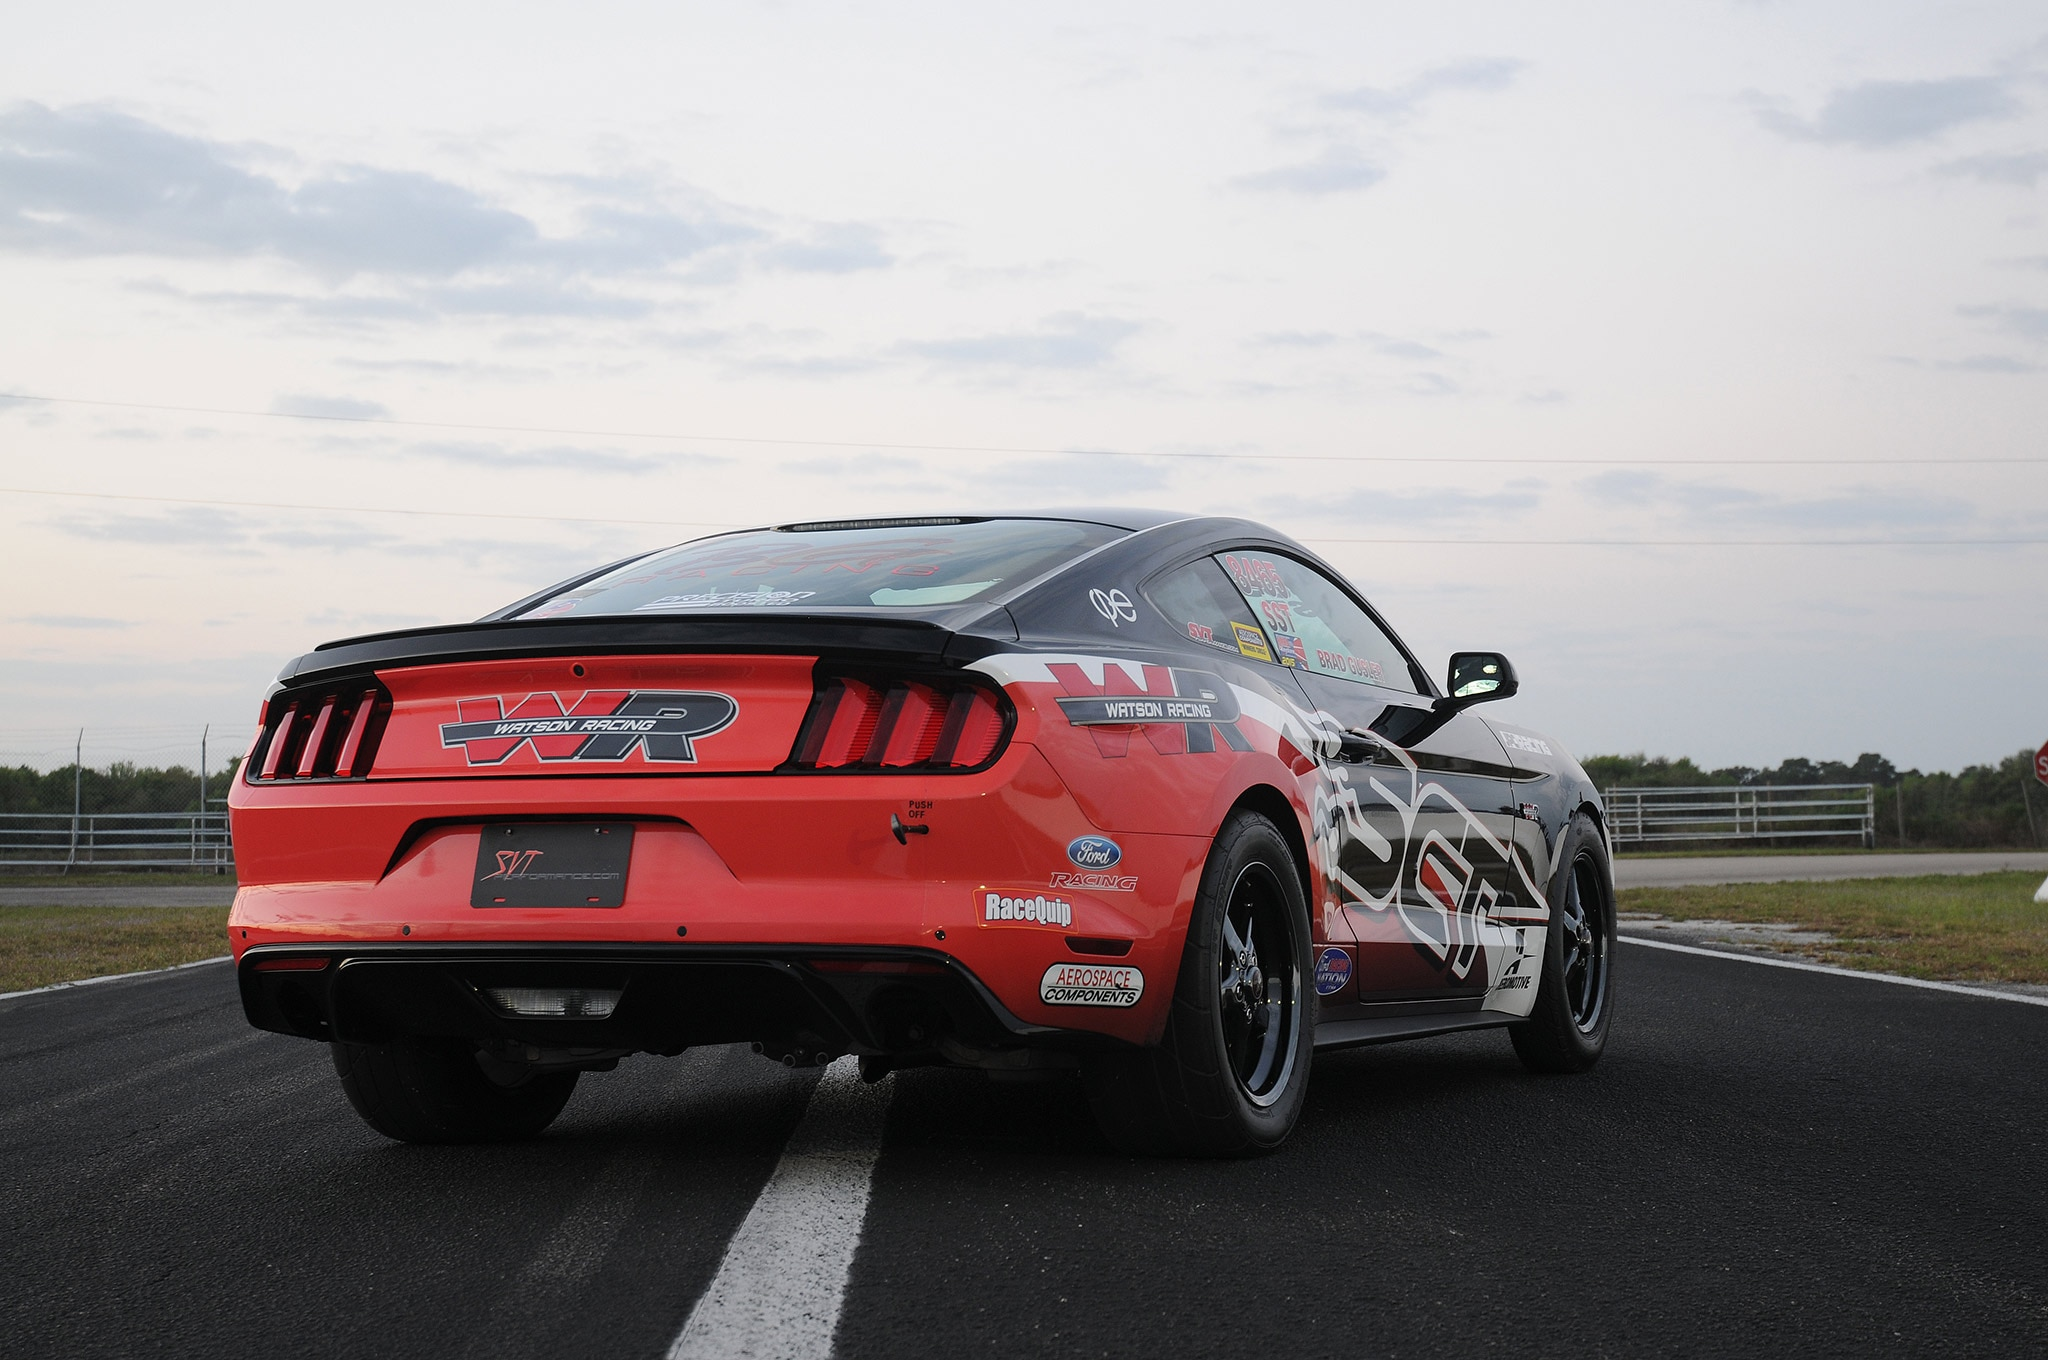 2015 Ford Mustang Ecoboost Rear Quarter